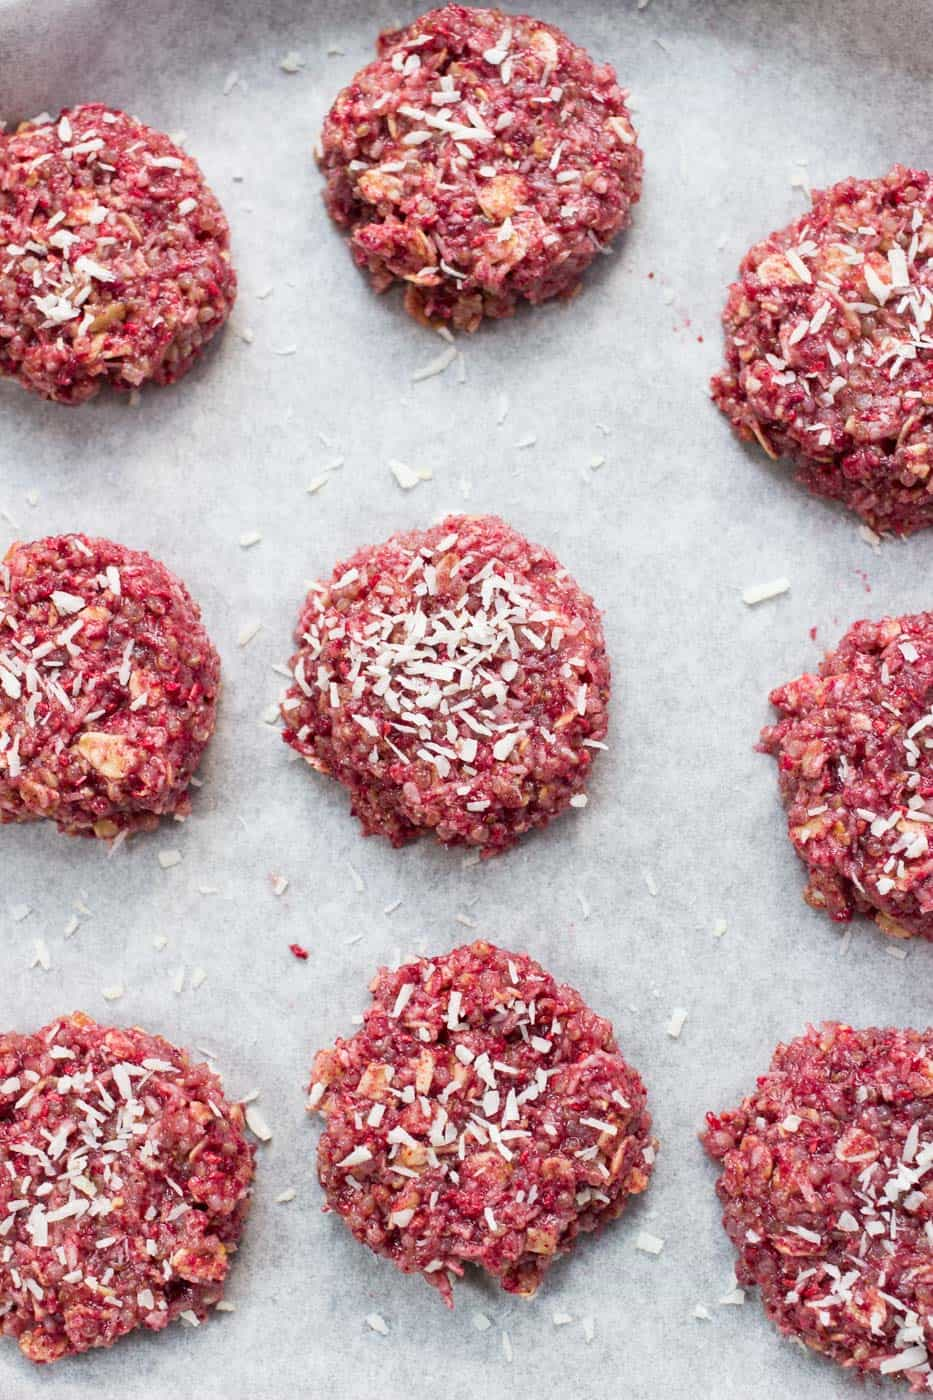 These amazing NO BAKE raspberry quinoa cookies use less than 10 ingredients and are totally healthy!